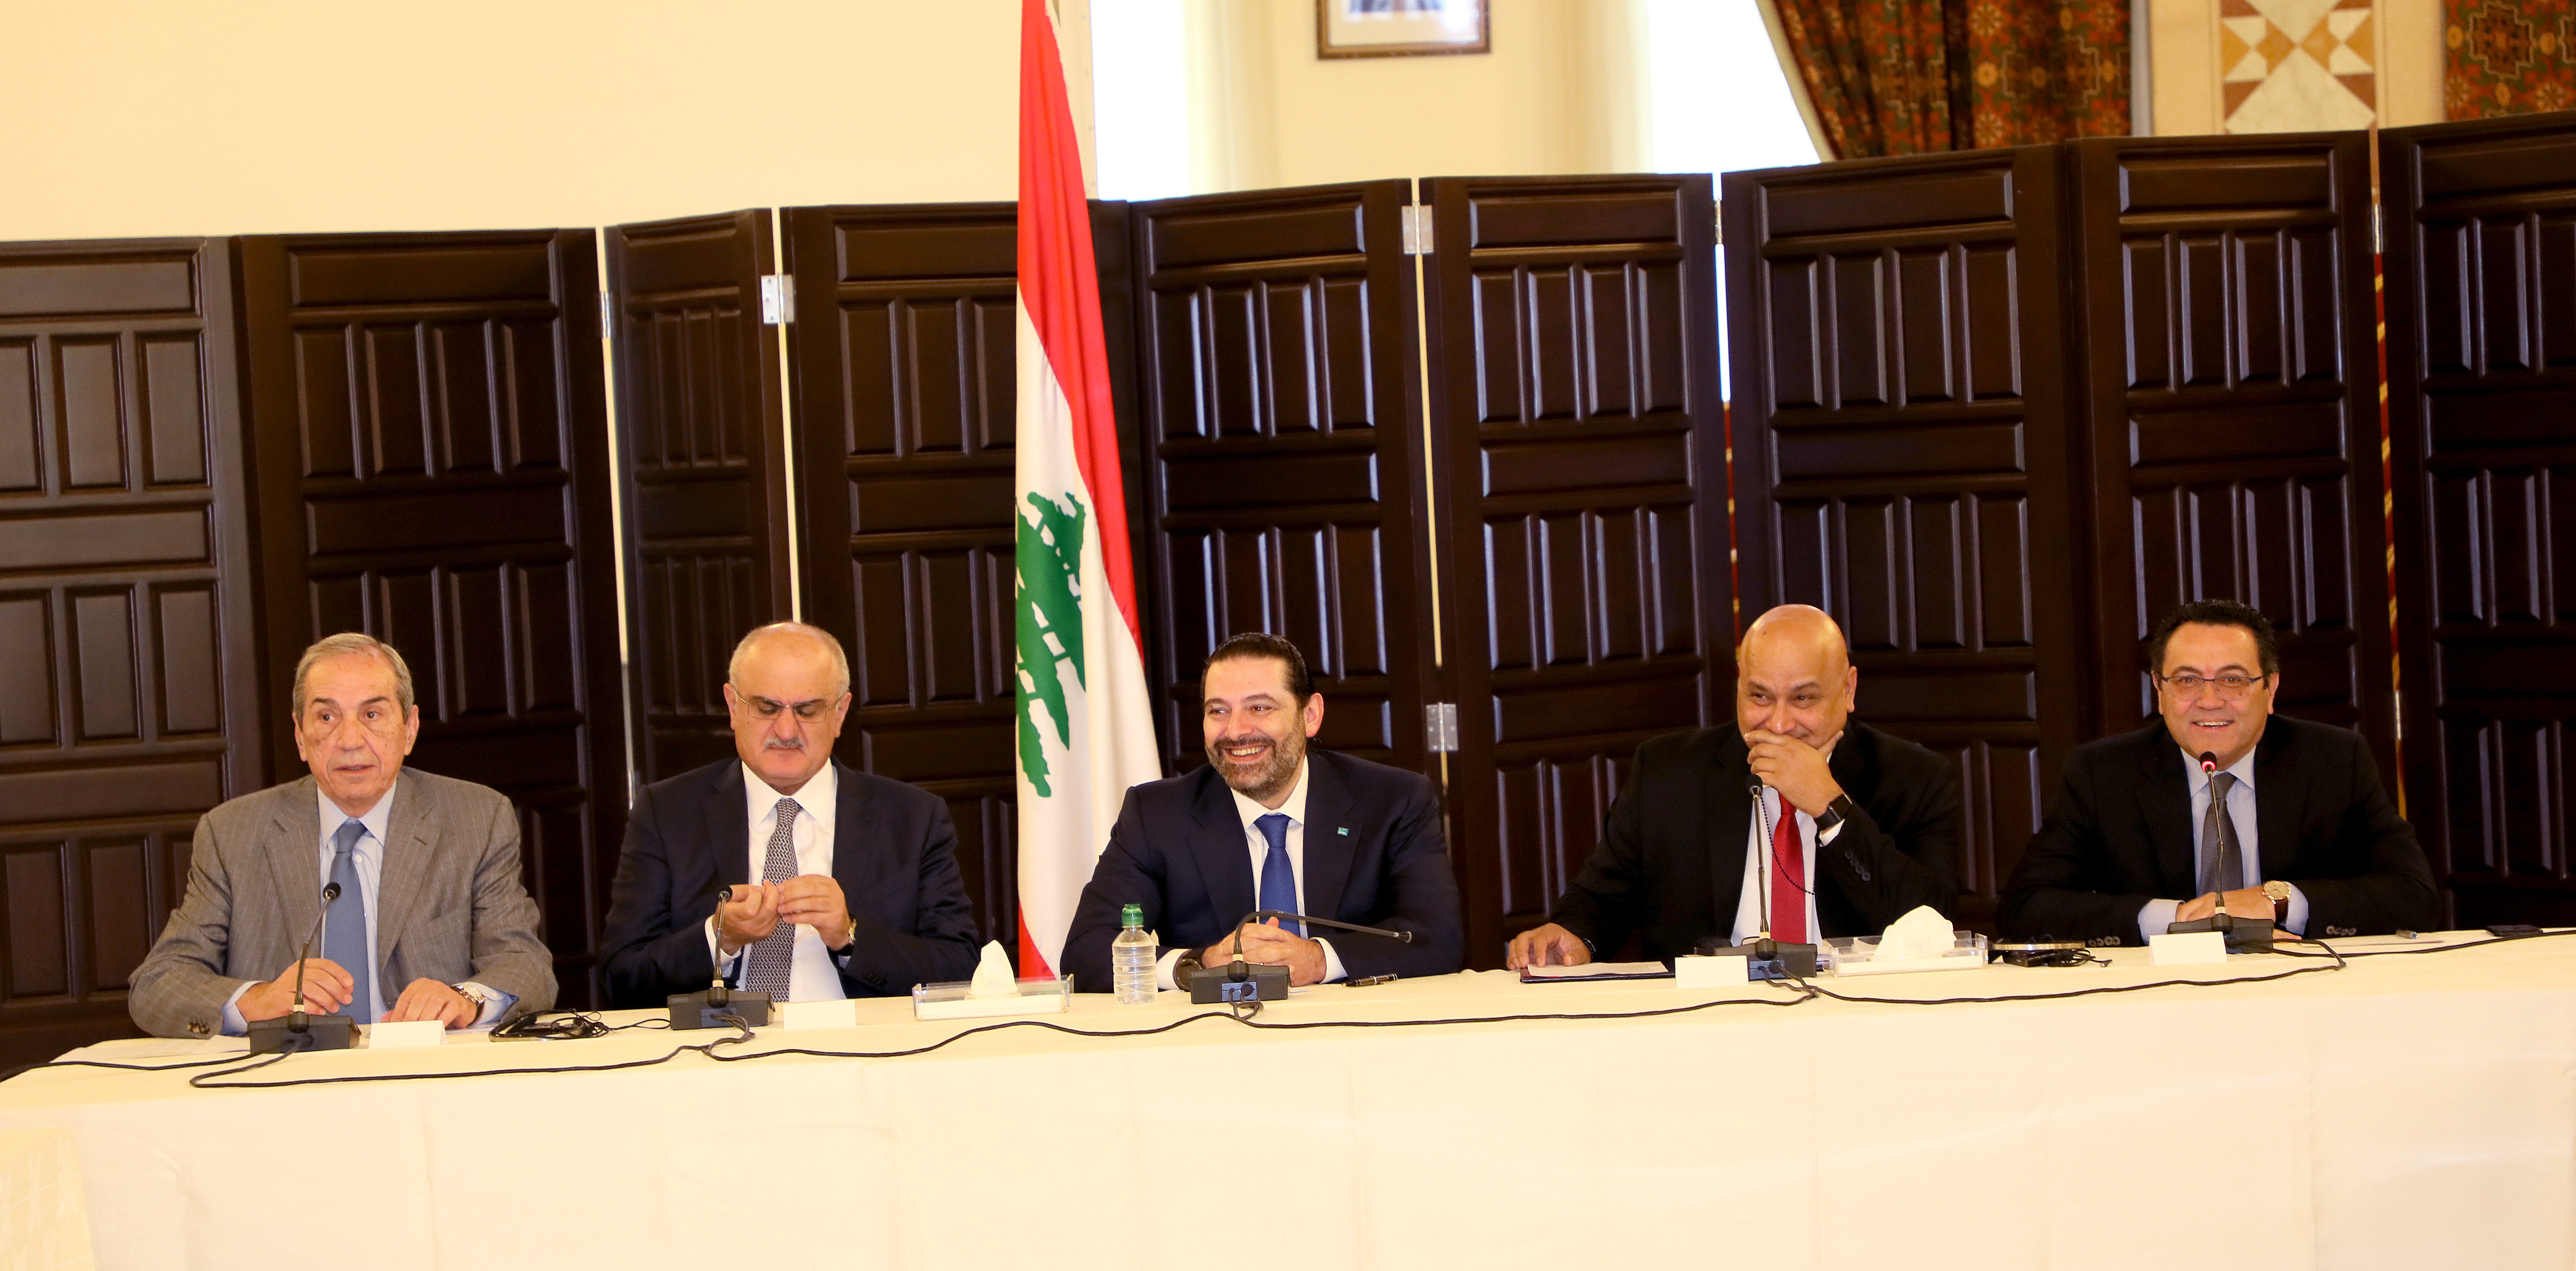 Workshop for Pr Minister Saad Hariri at Grand Serail  4